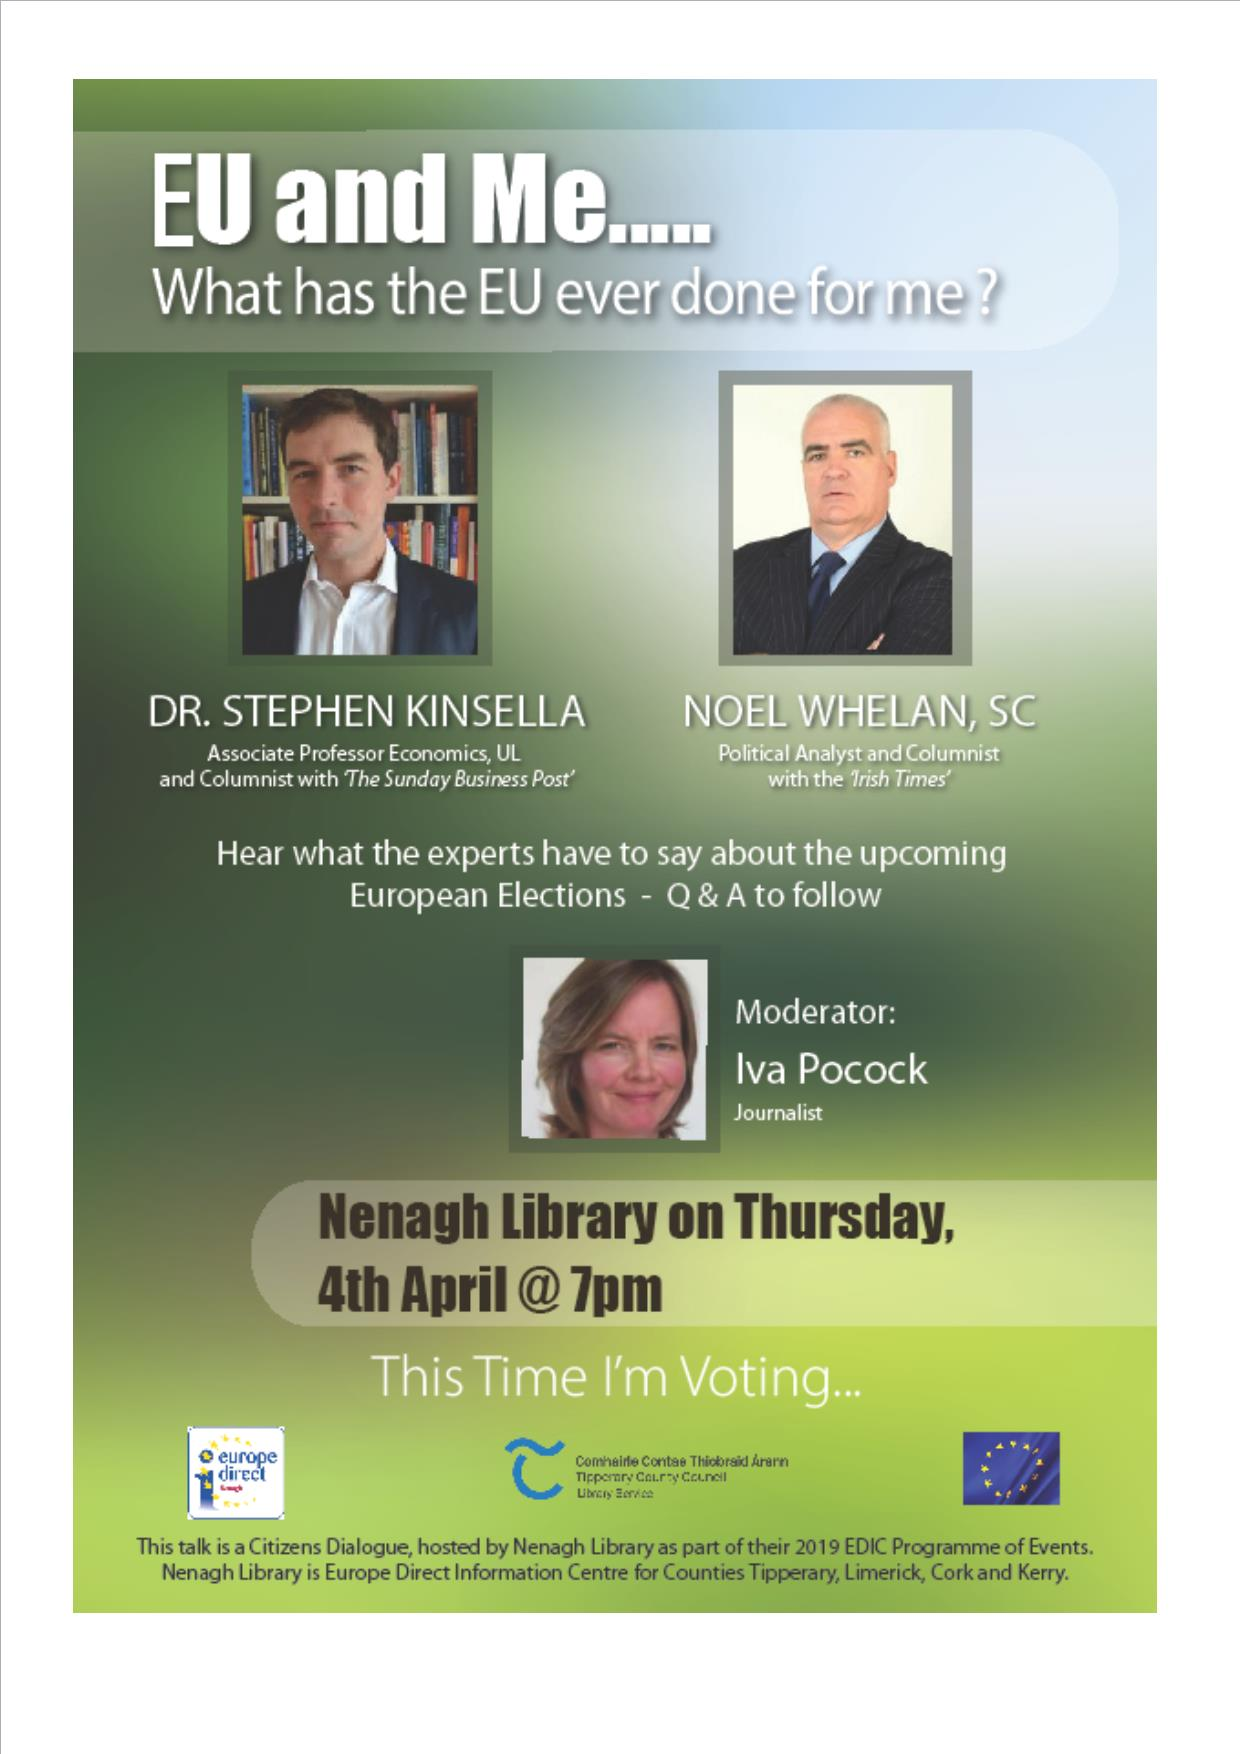 'EU And Me…What Has The EU Ever Done For Me?': A Citizens Dialogue In Nenagh Library